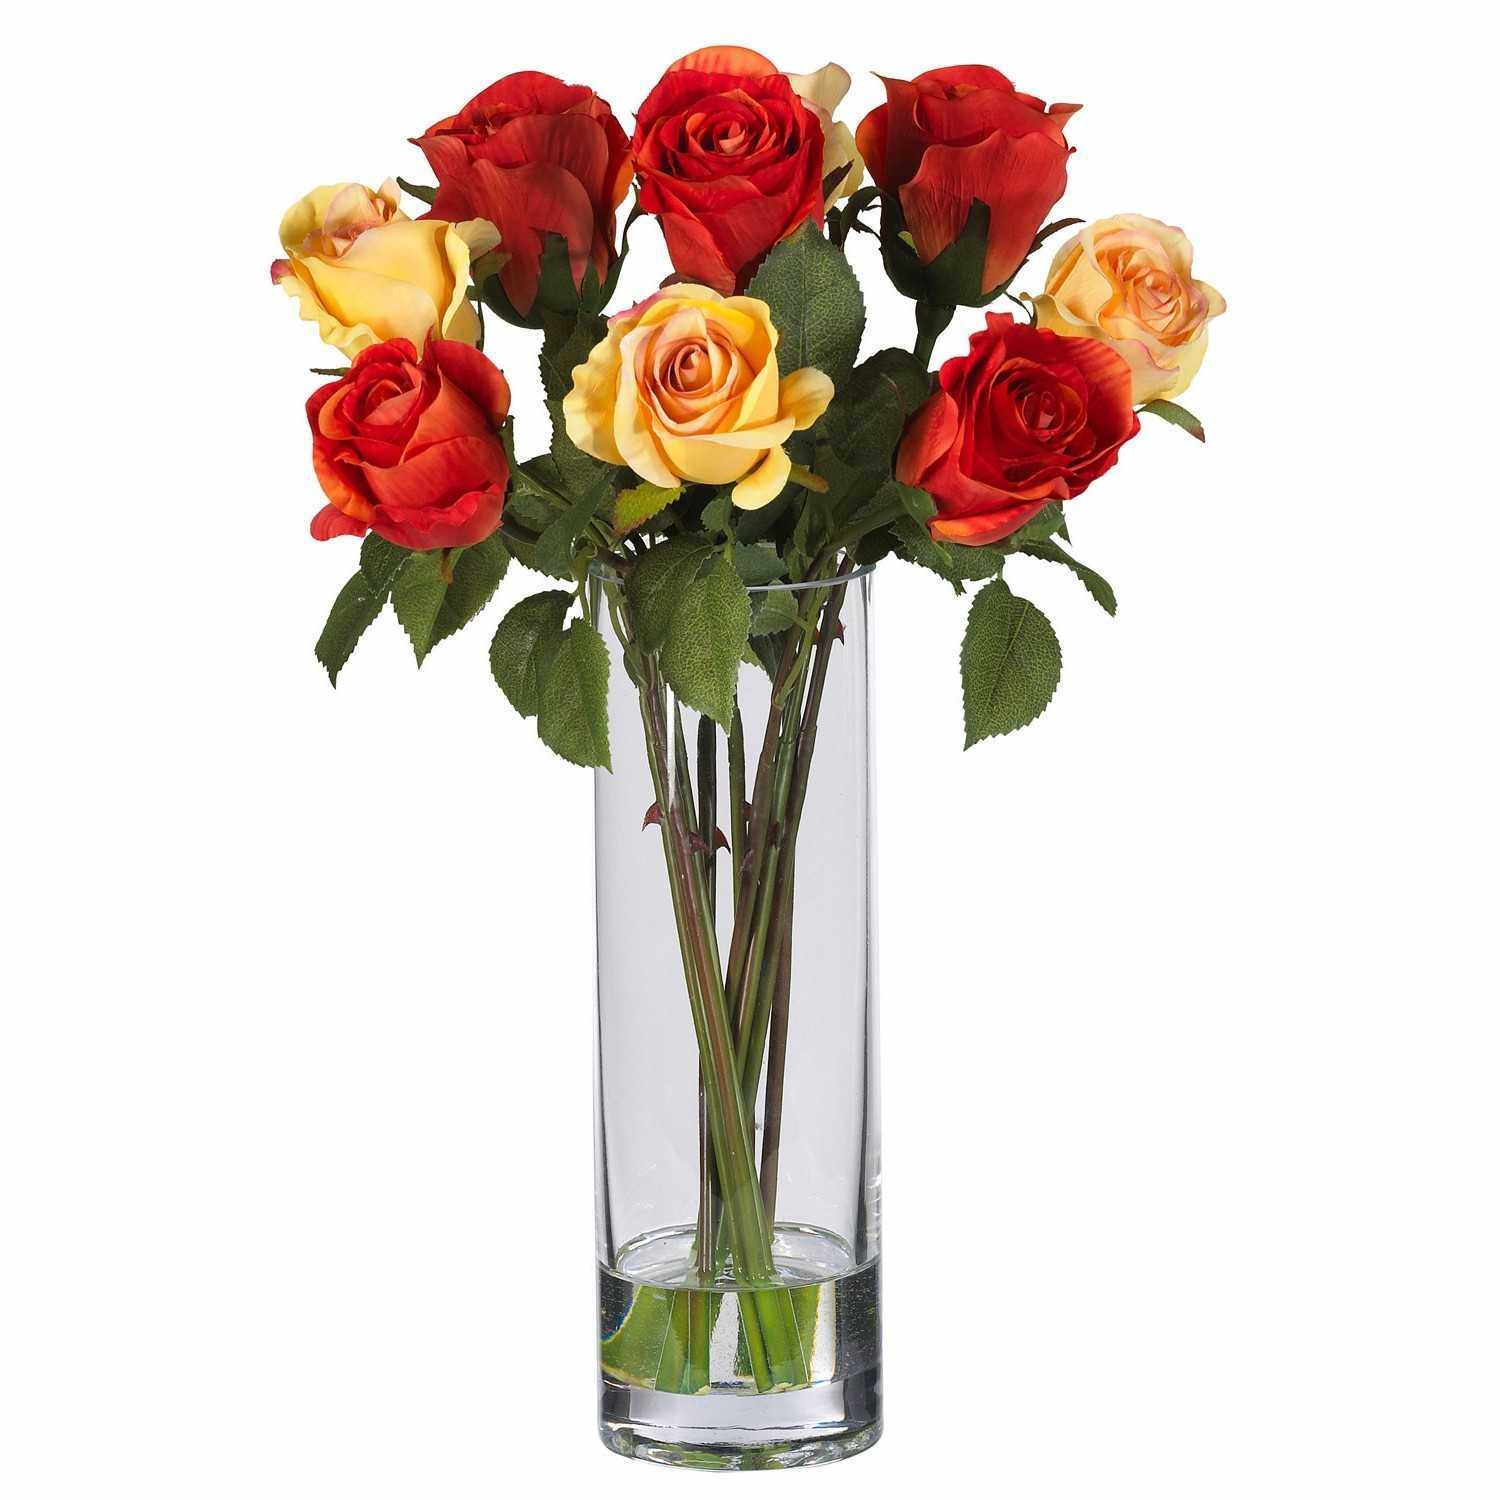 small colored bud vases of international flower delivery fresh lsa flower colour bud vase red h pertaining to international flower delivery fresh lsa flower colour bud vase red h vases flowers small glass